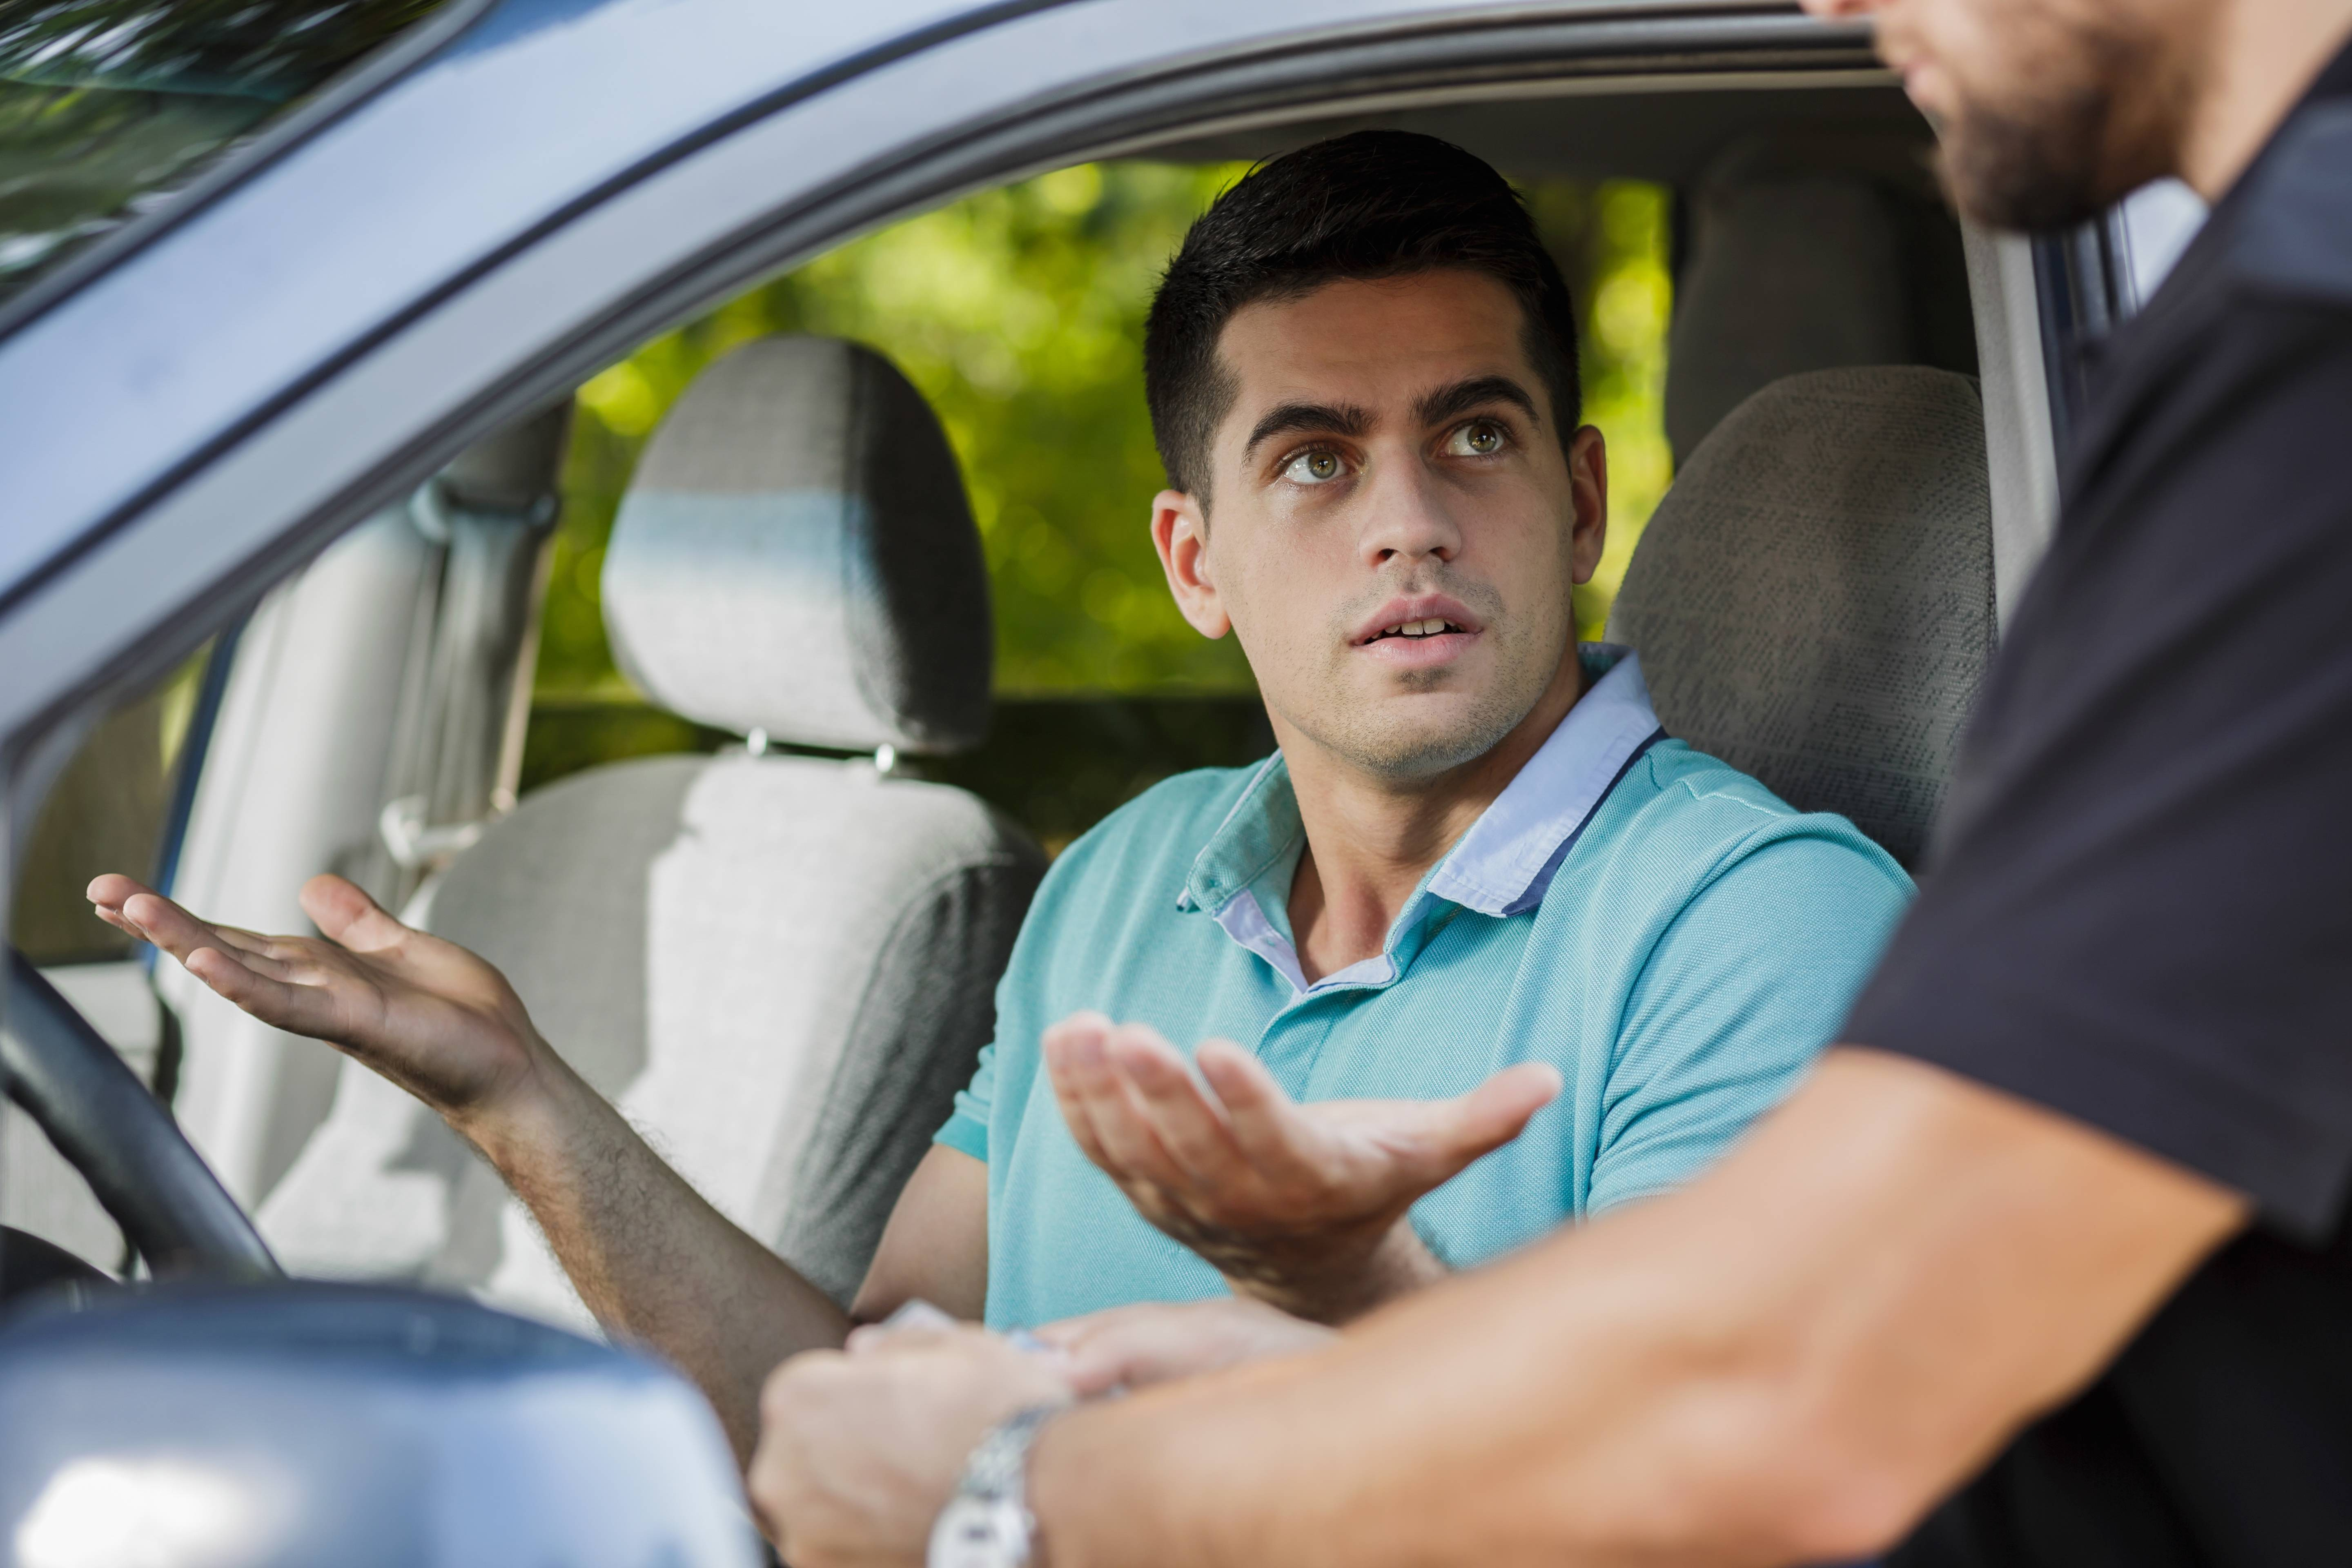 Reckless Driving - DUI defense attorney service